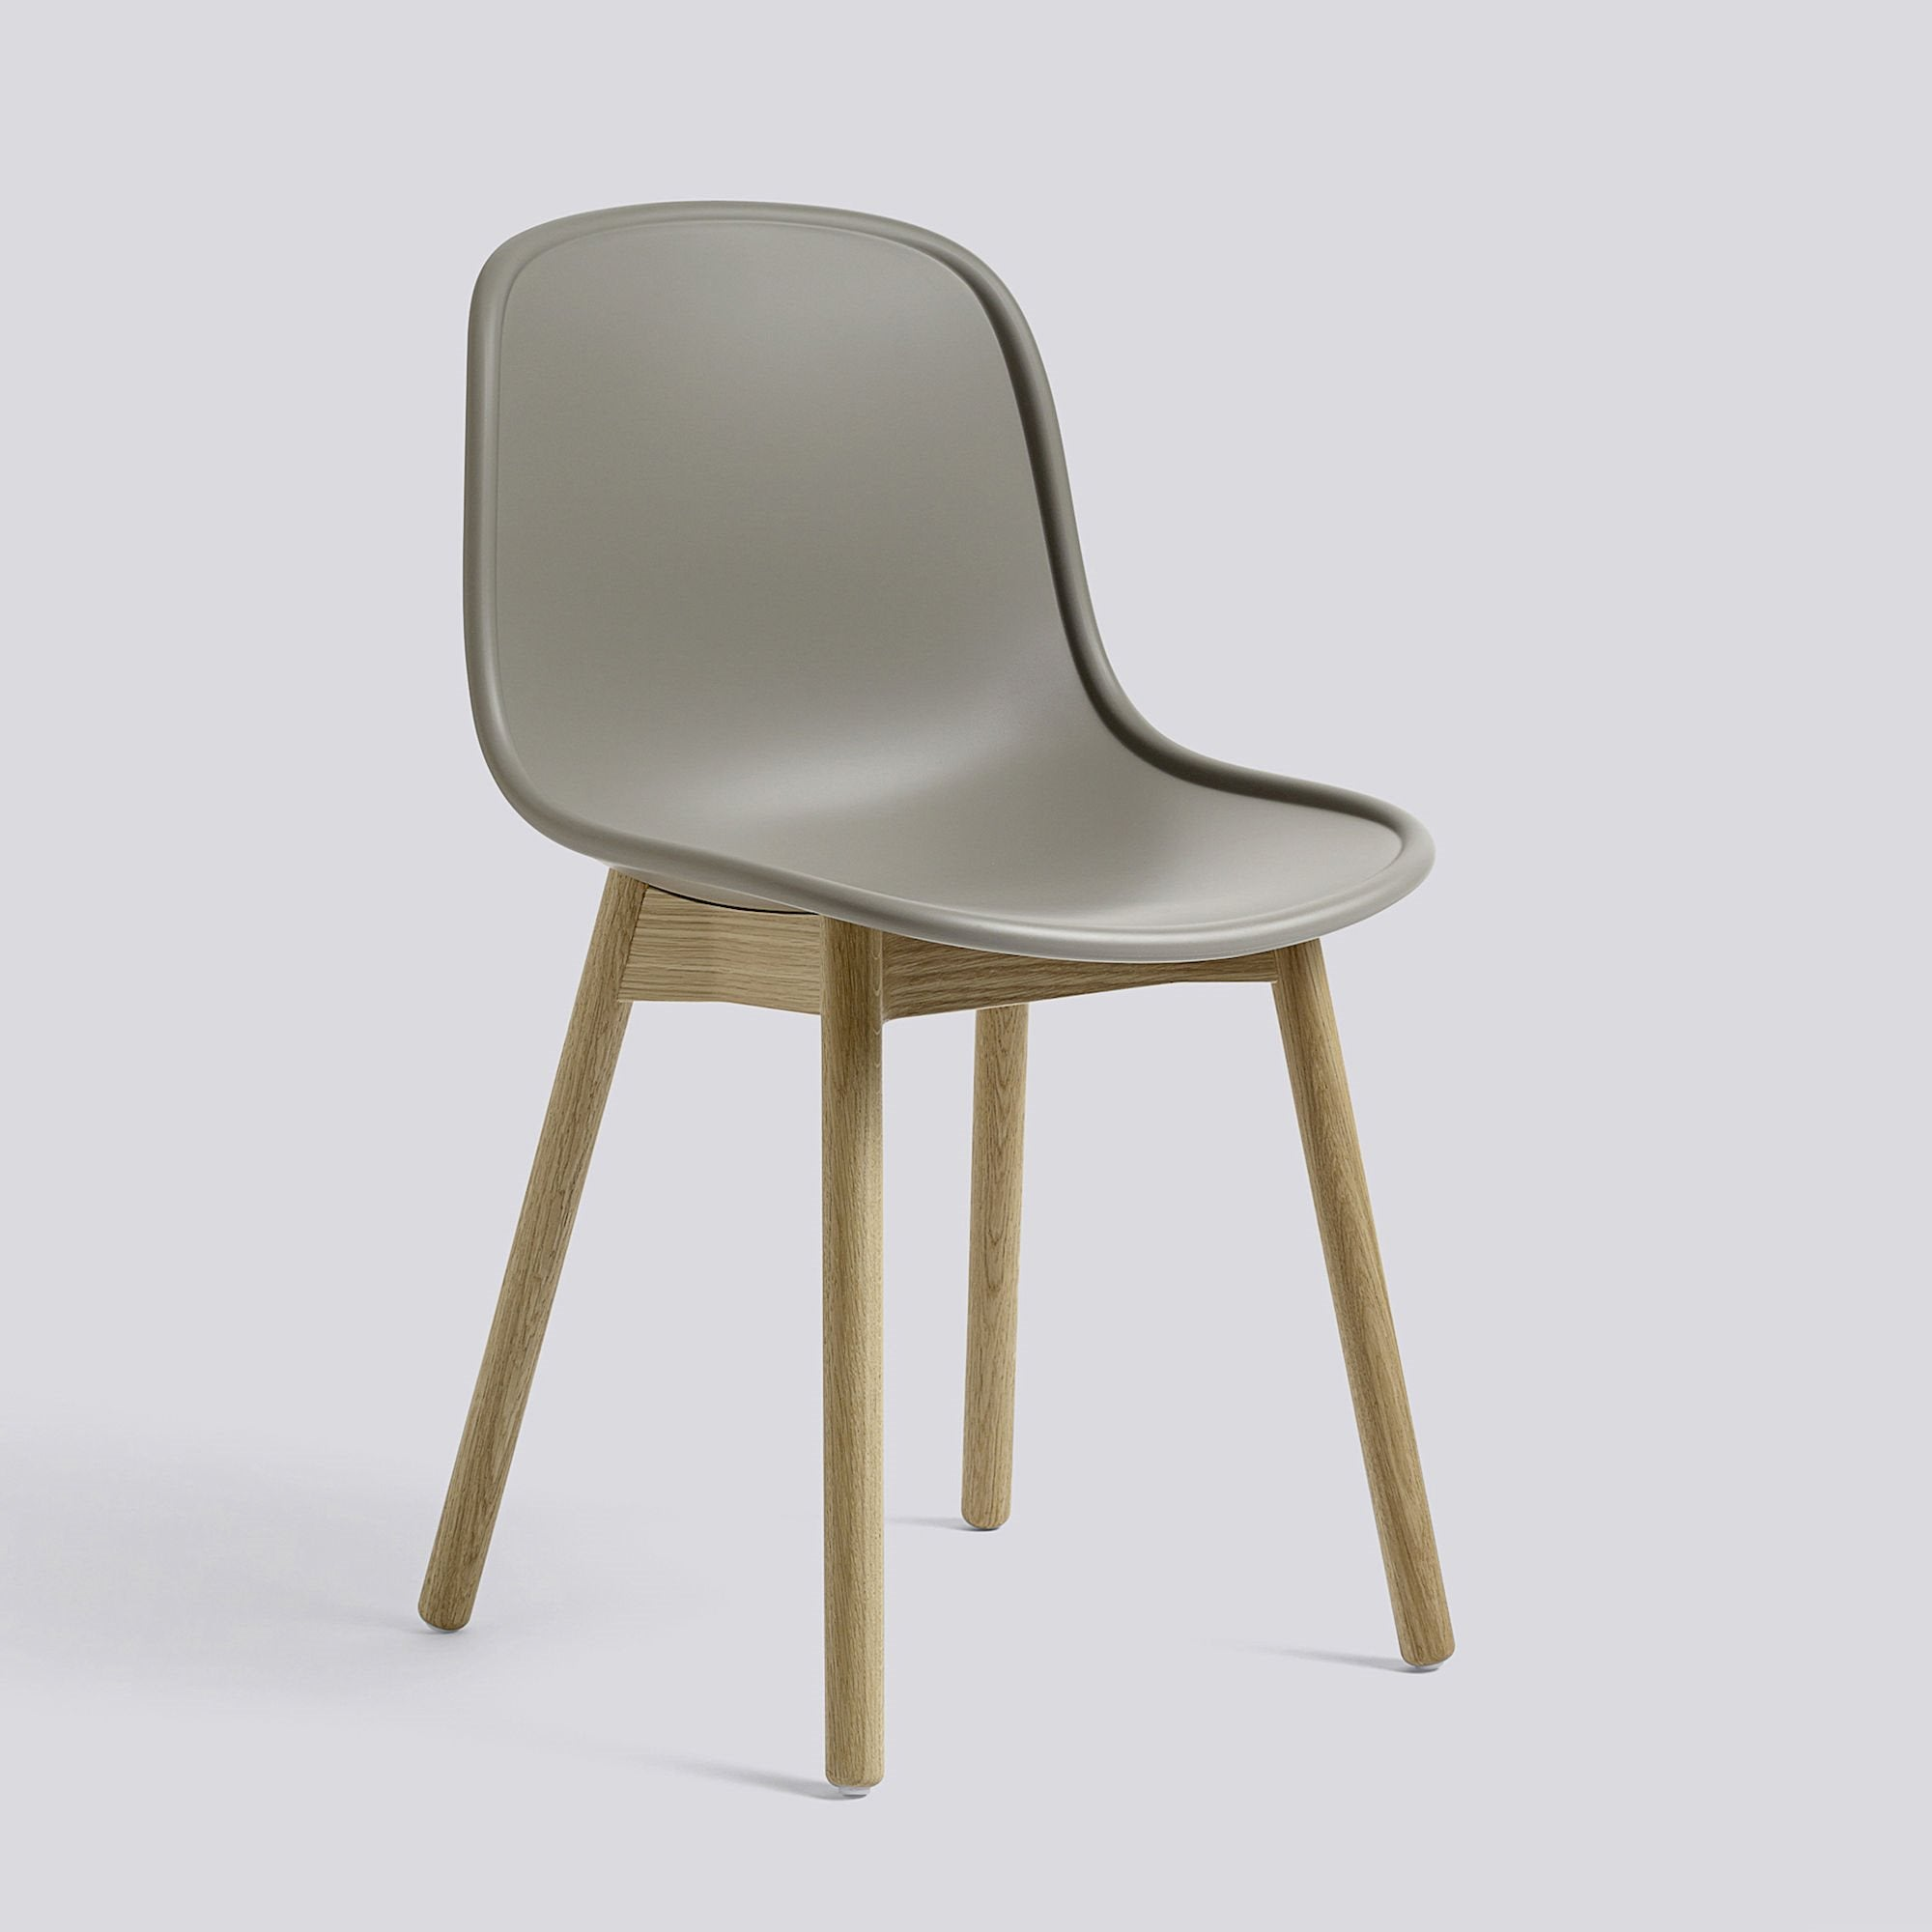 Neu 13 Chair - Polypropylene Seat